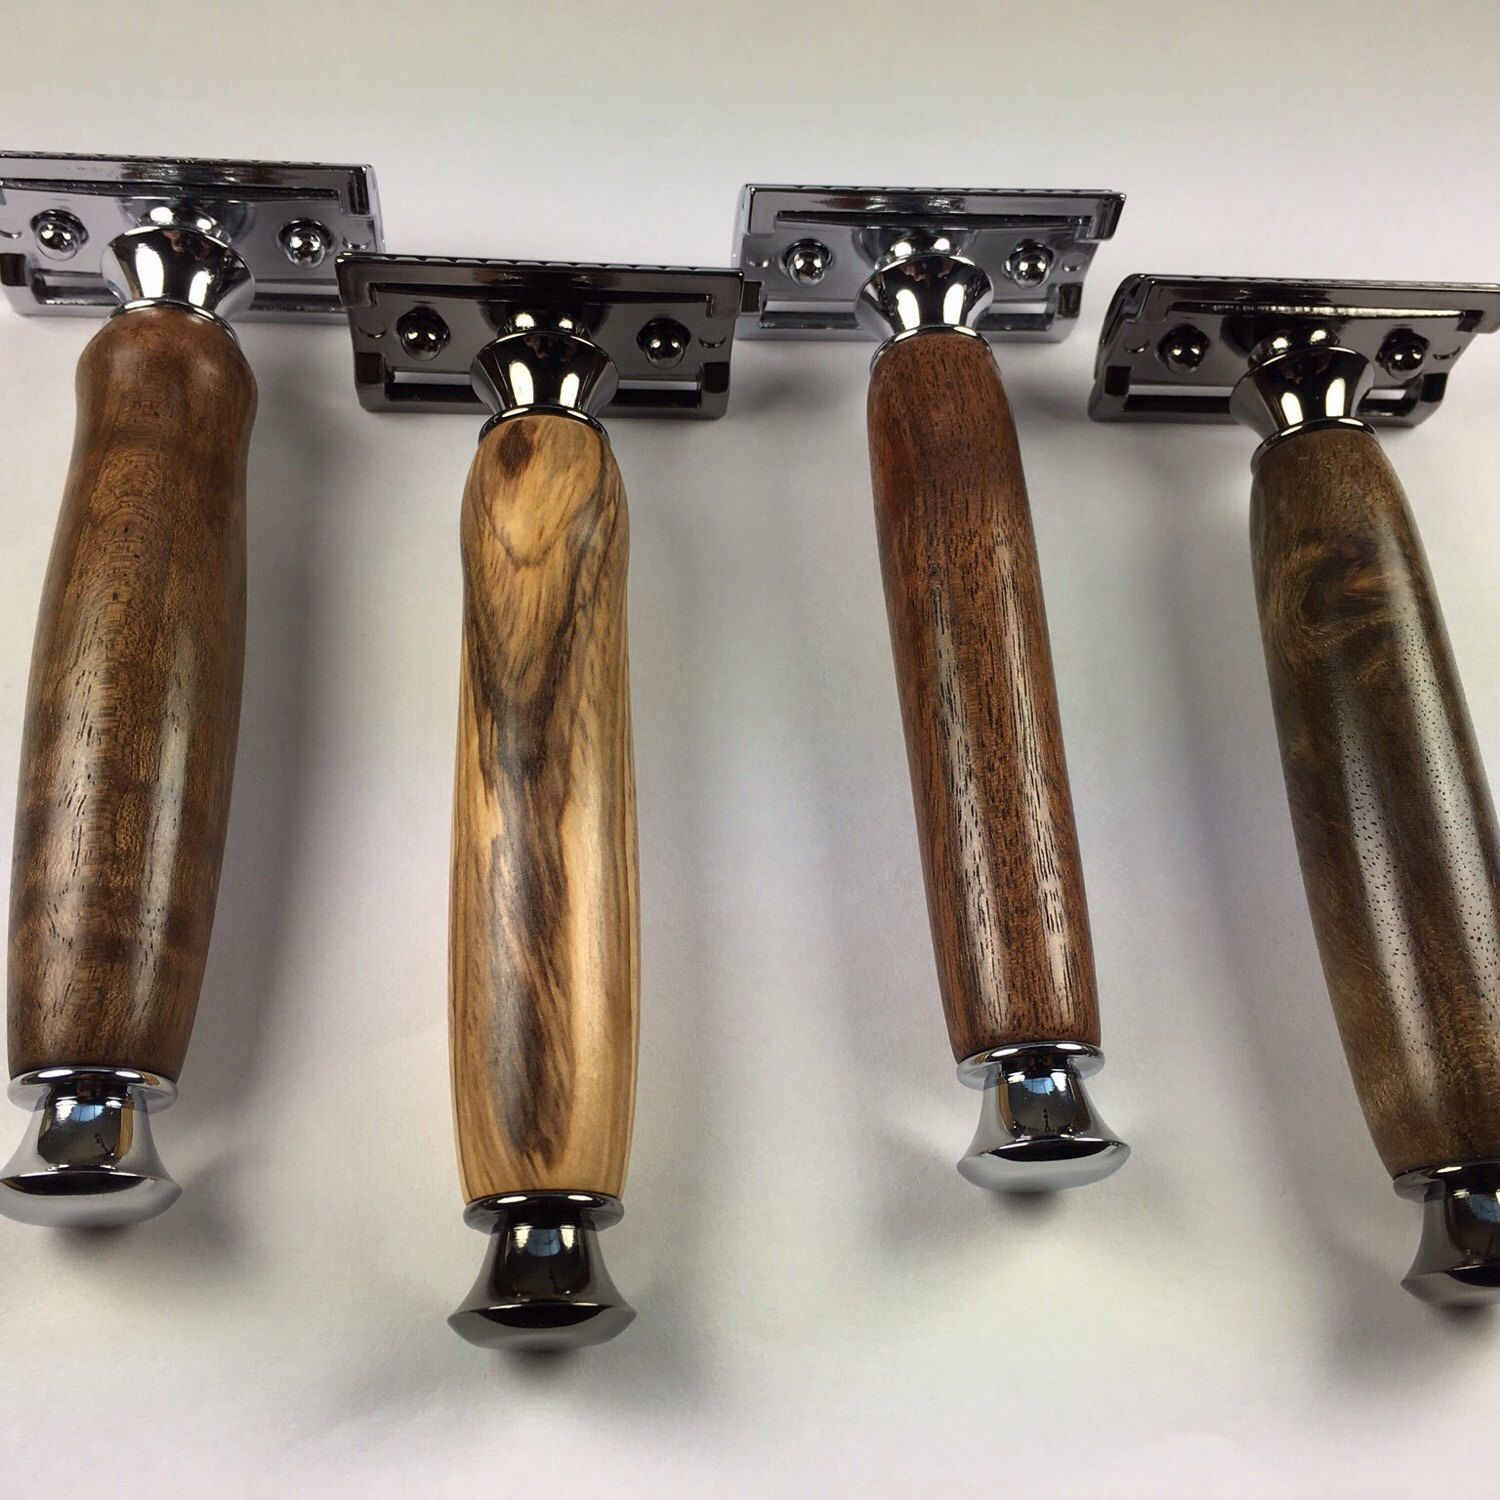 New DE Safety razors available Safety razor, Can opener